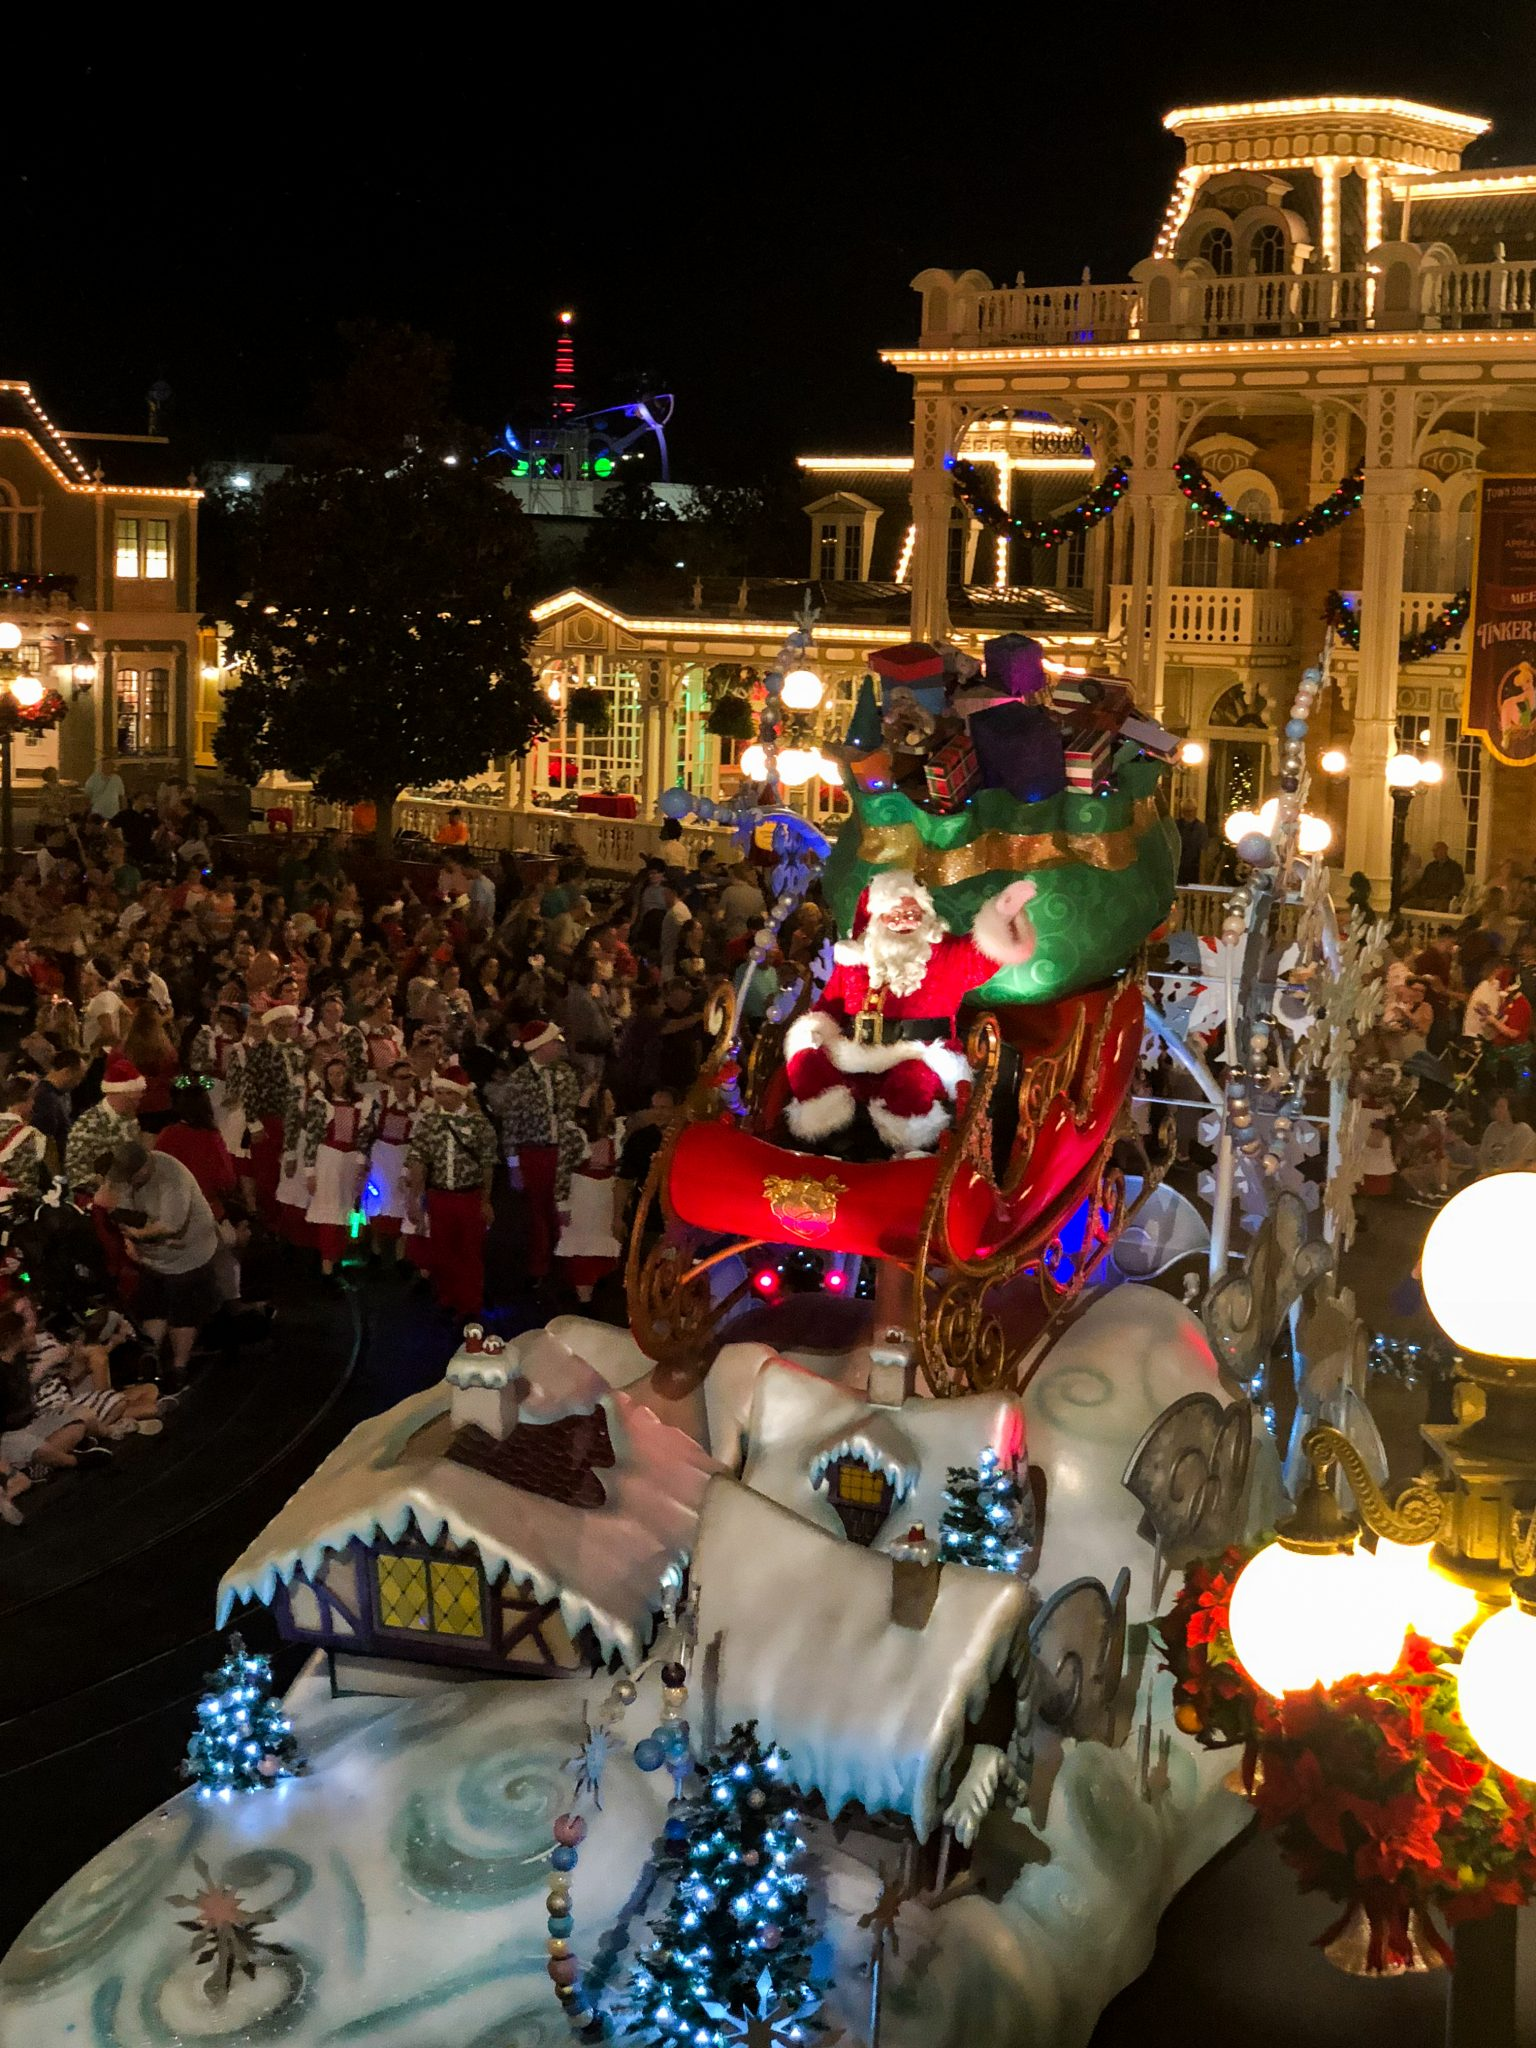 From Christmas trees to snow on Main Street, from free hot cocoa and cookies to fireworks the holidays at Walt Disney World are full of magic, lights, and the best family memories. You won't want to miss these 15 Ways to Celebrate the Holidays at Walt Disney World.